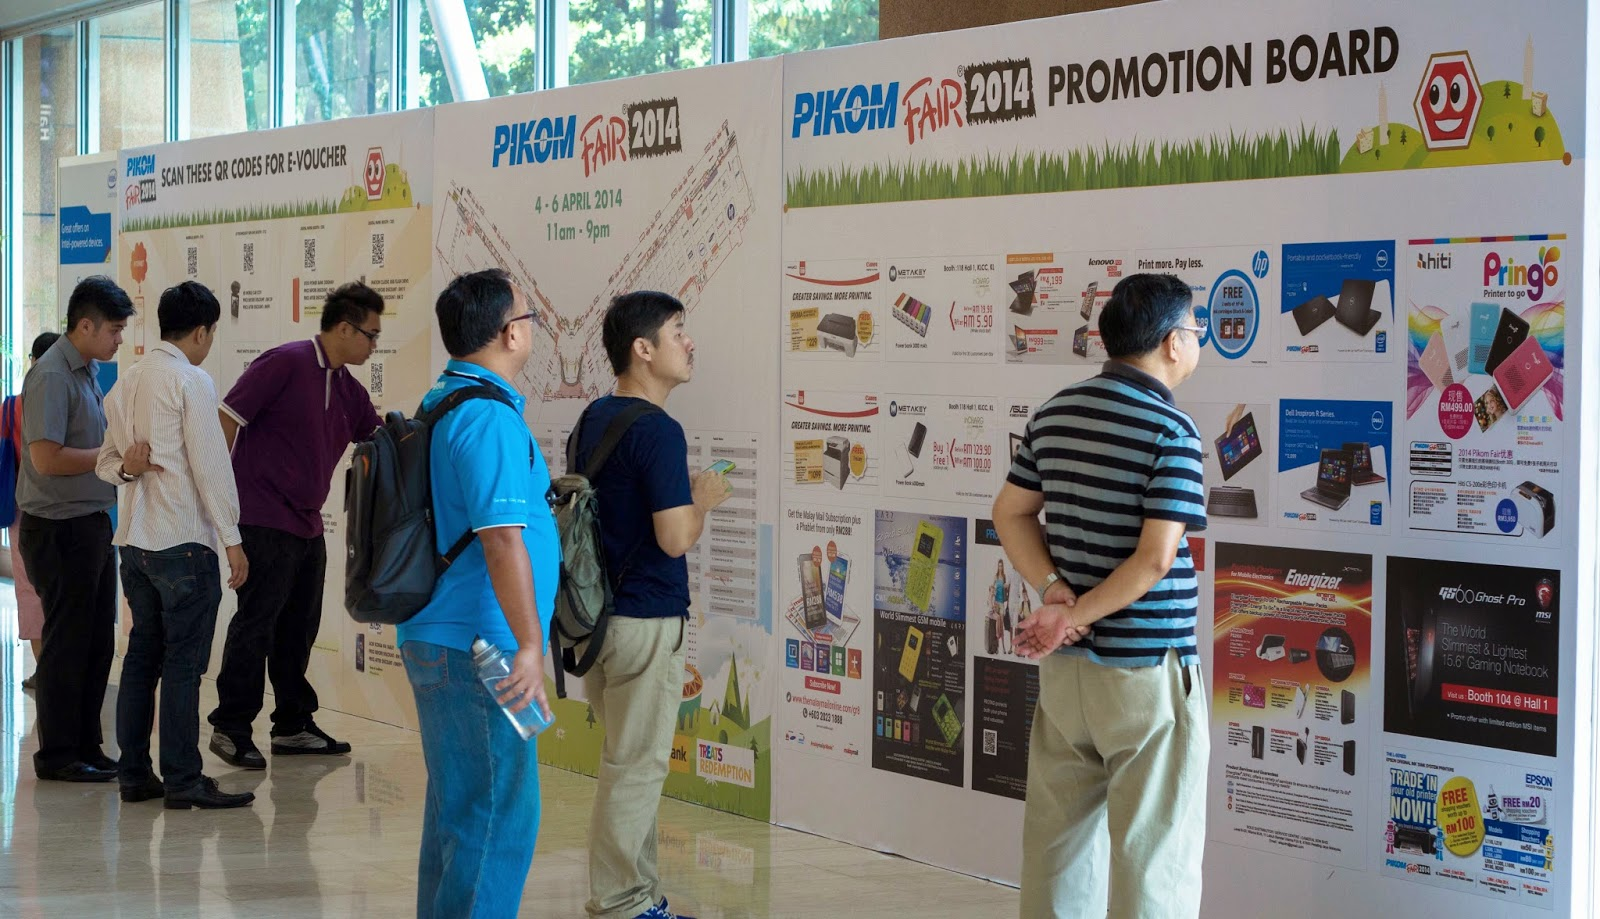 Coverage of PIKOM PC Fair 2014 @ Kuala Lumpur Convention Center 274